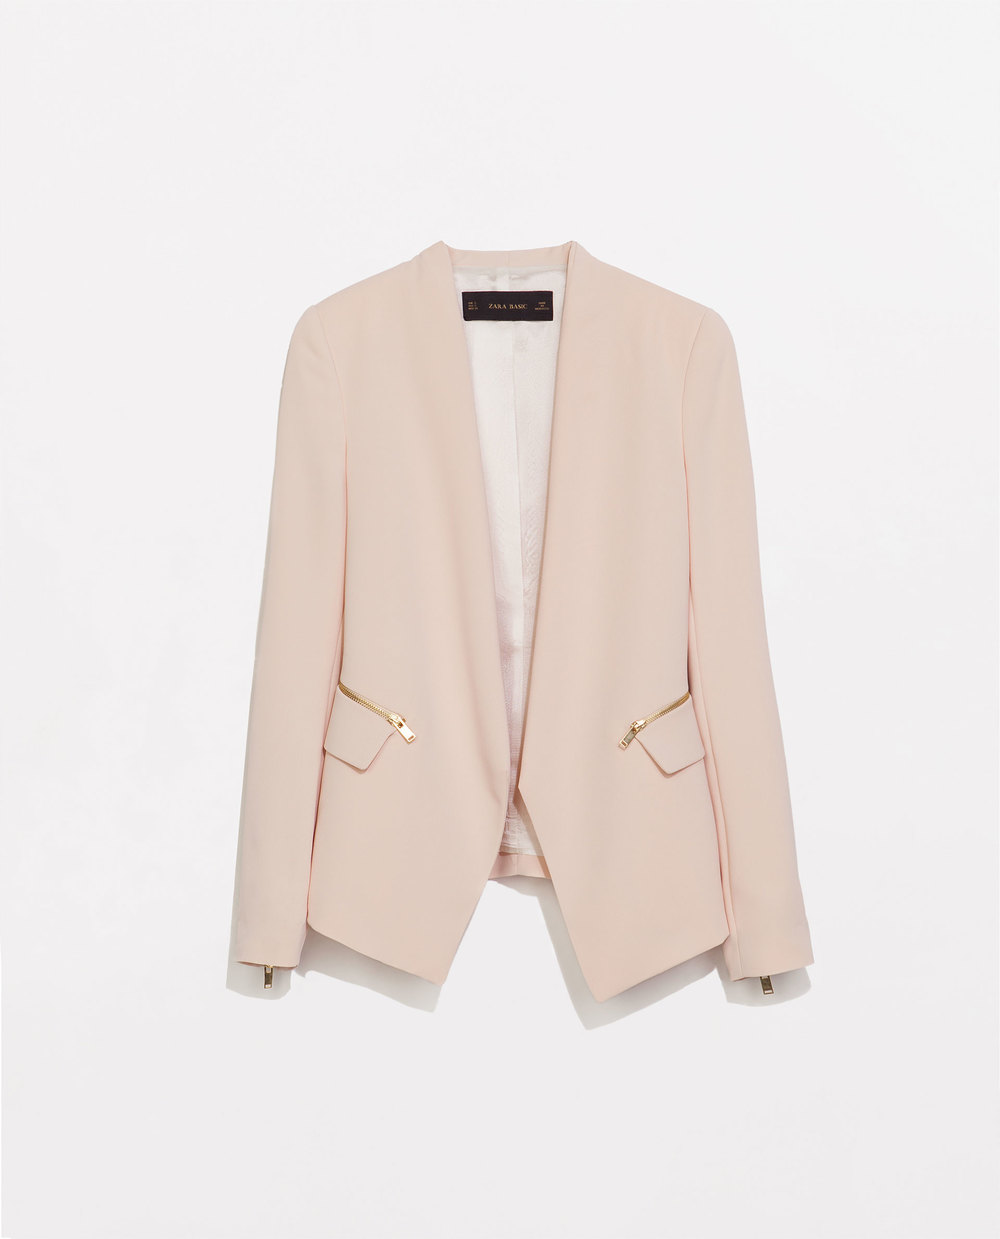 Zara, Striped Blazer with Zips, £69.99